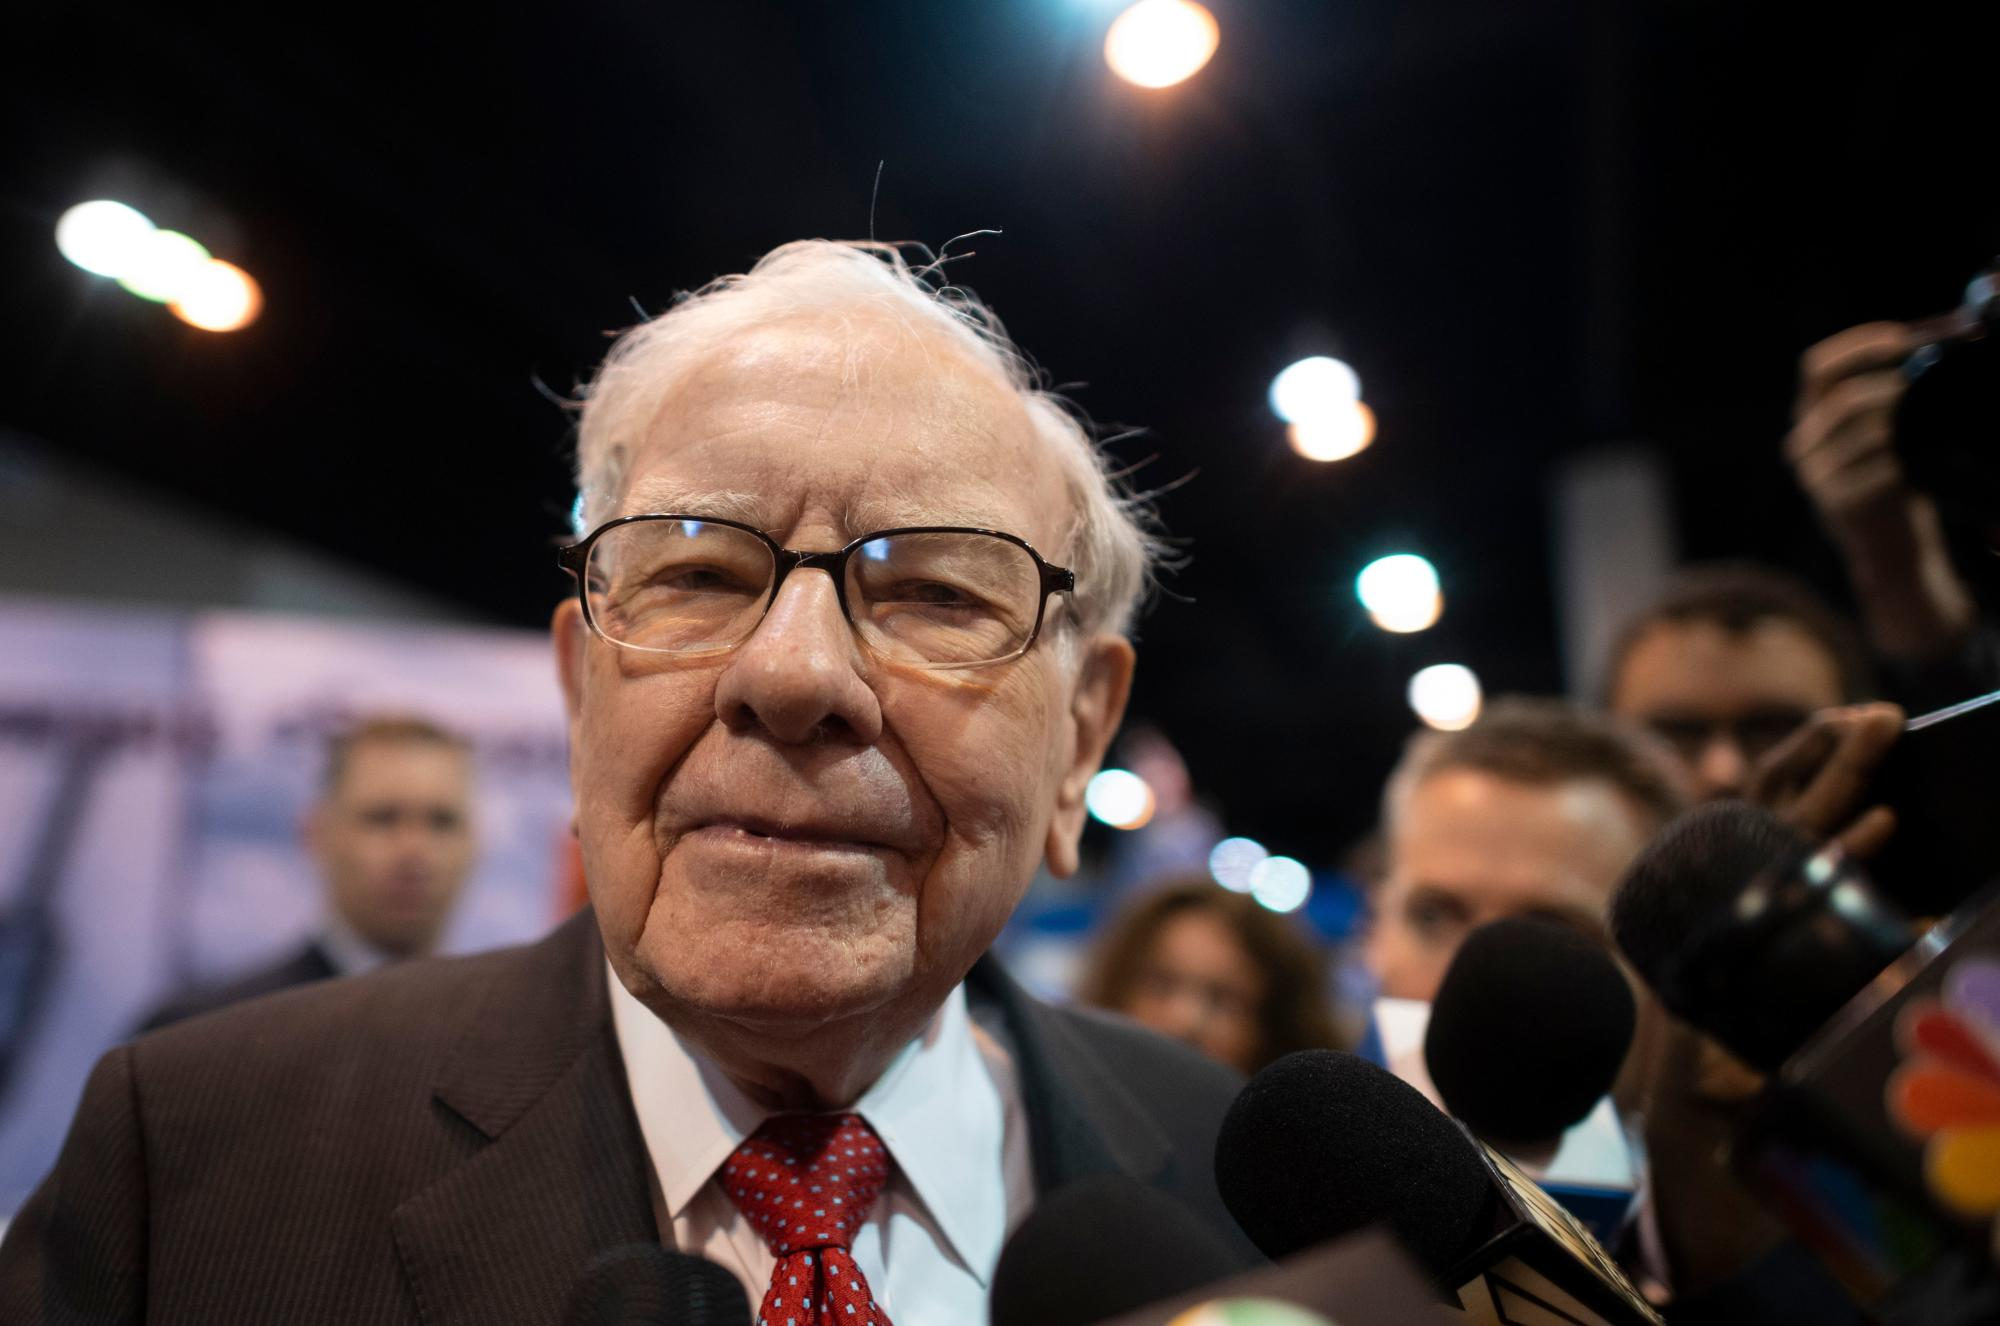 Warren Buffett explains why Berkshire Hathaway is not a typical conglomerate